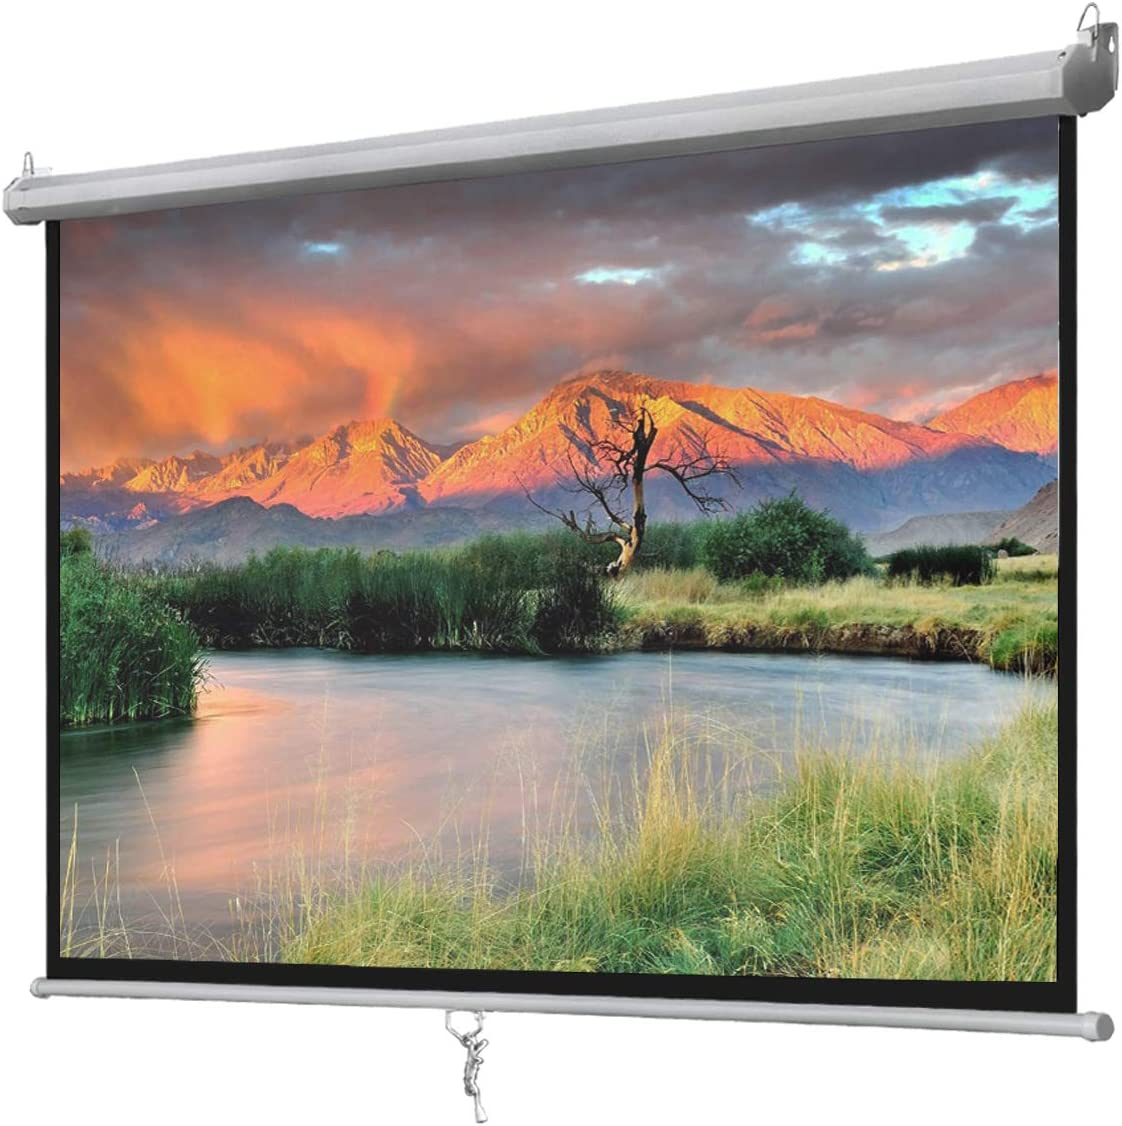 Oteymart 100 Inches Manual Projector Screen Pull Down-Portable Screen Video Projection 16:9 HD Matte White Home Theater with Auto Lock Anti-Crease for Home Theater Outdoor,Wall/Ceiling Mounting